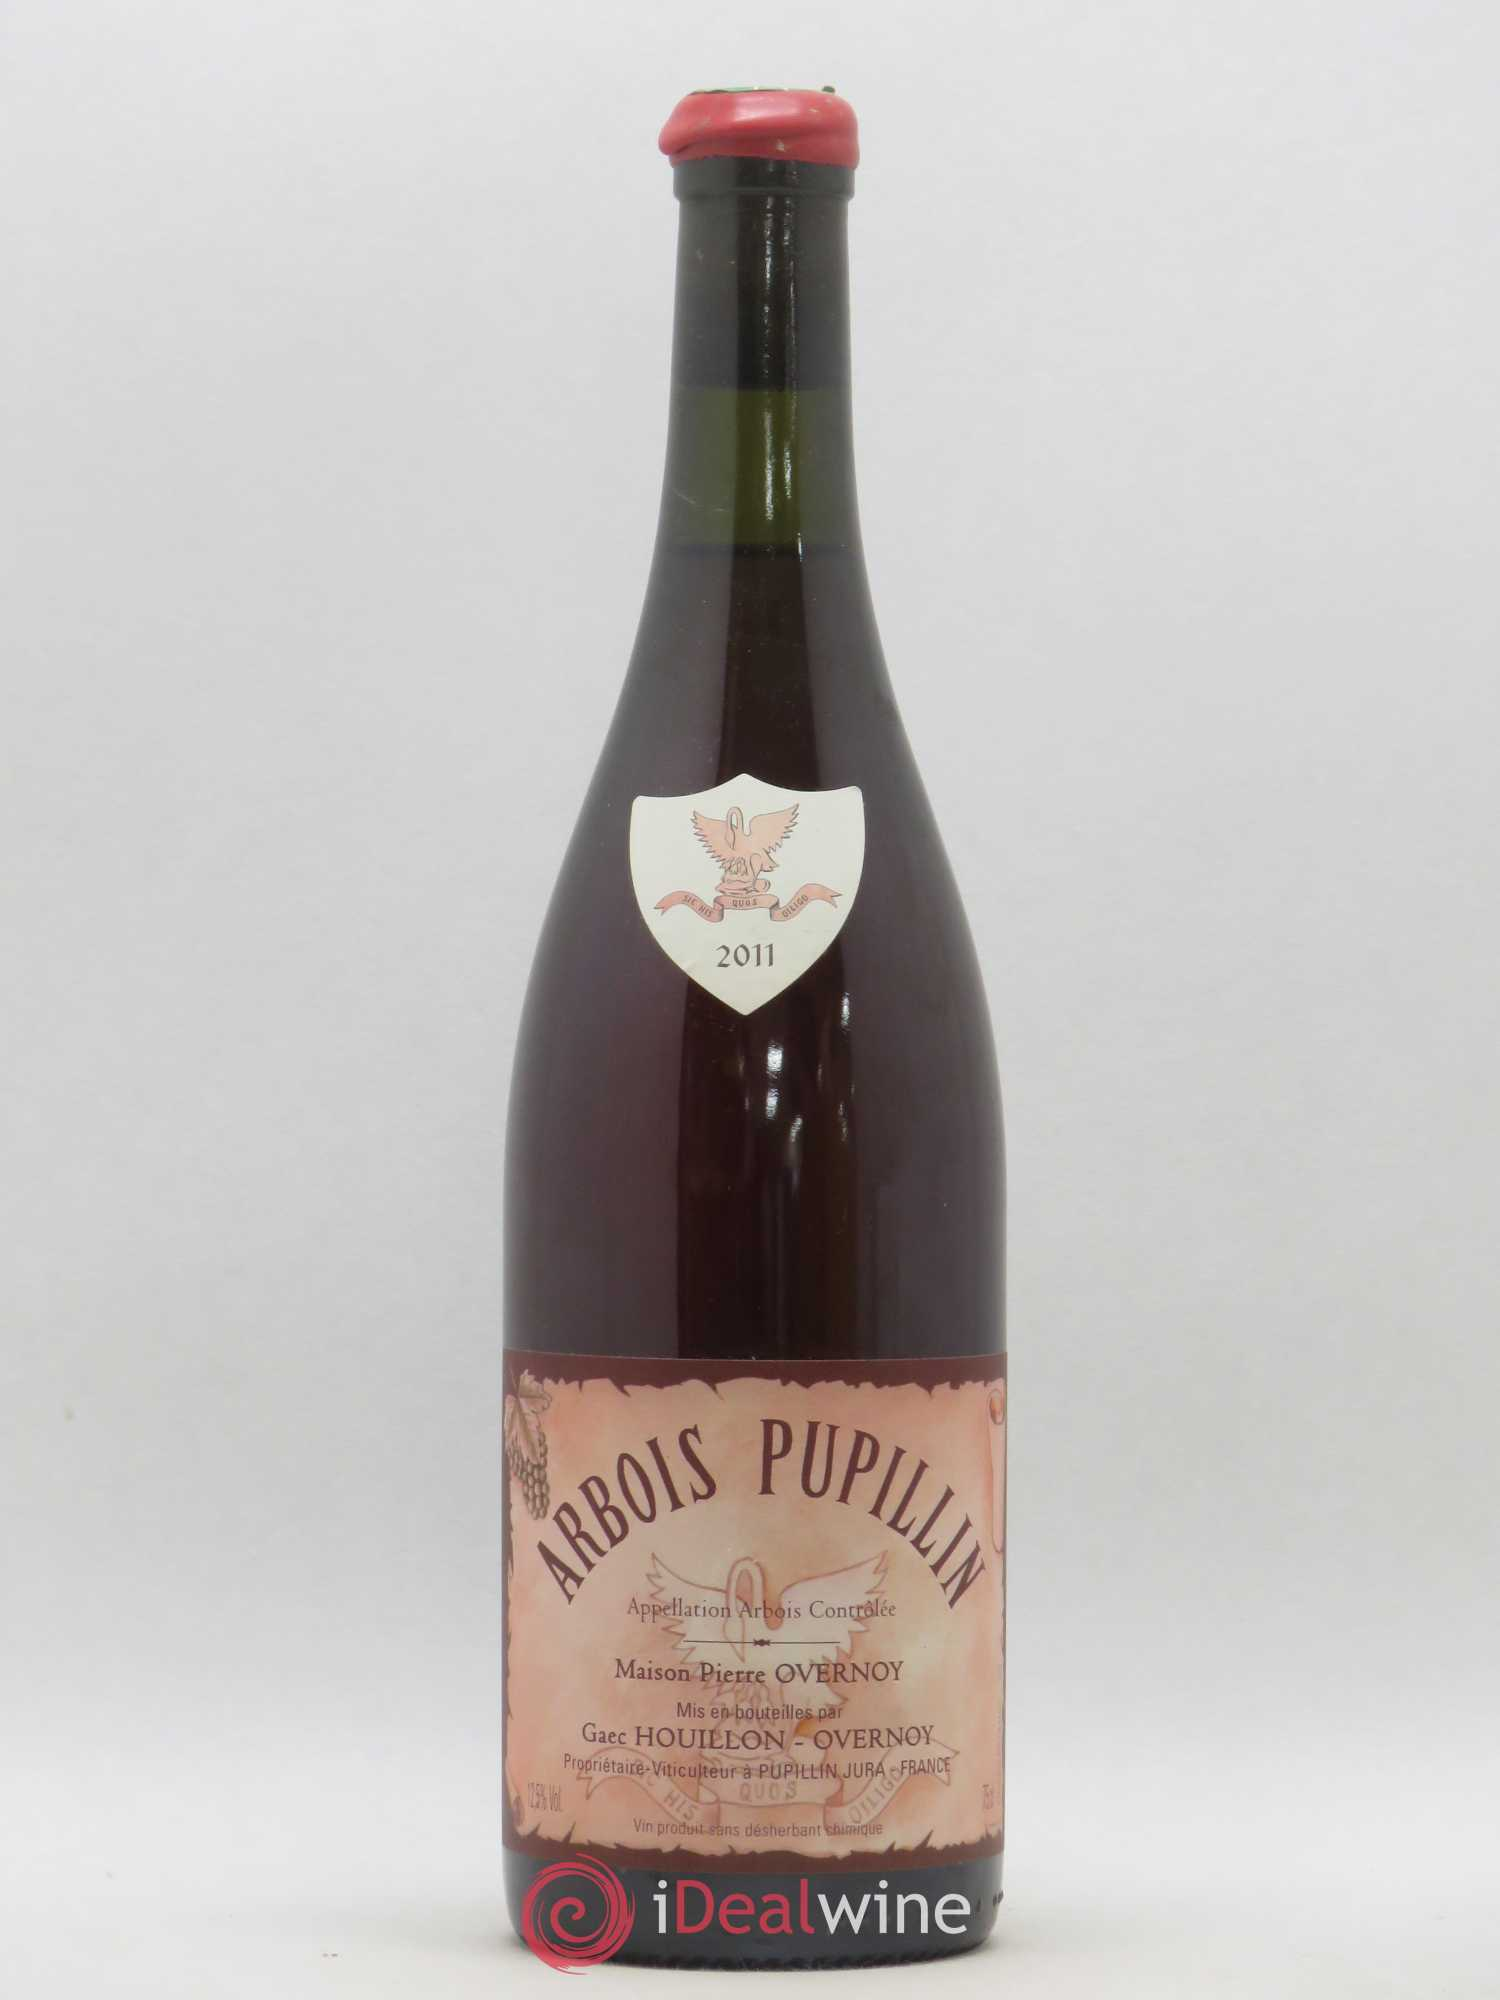 Arbois Pupillin Poulsard (cire rouge) Pierre Overnoy (Domaine) (no reserve) 2011 - Lot of 1 Bottle